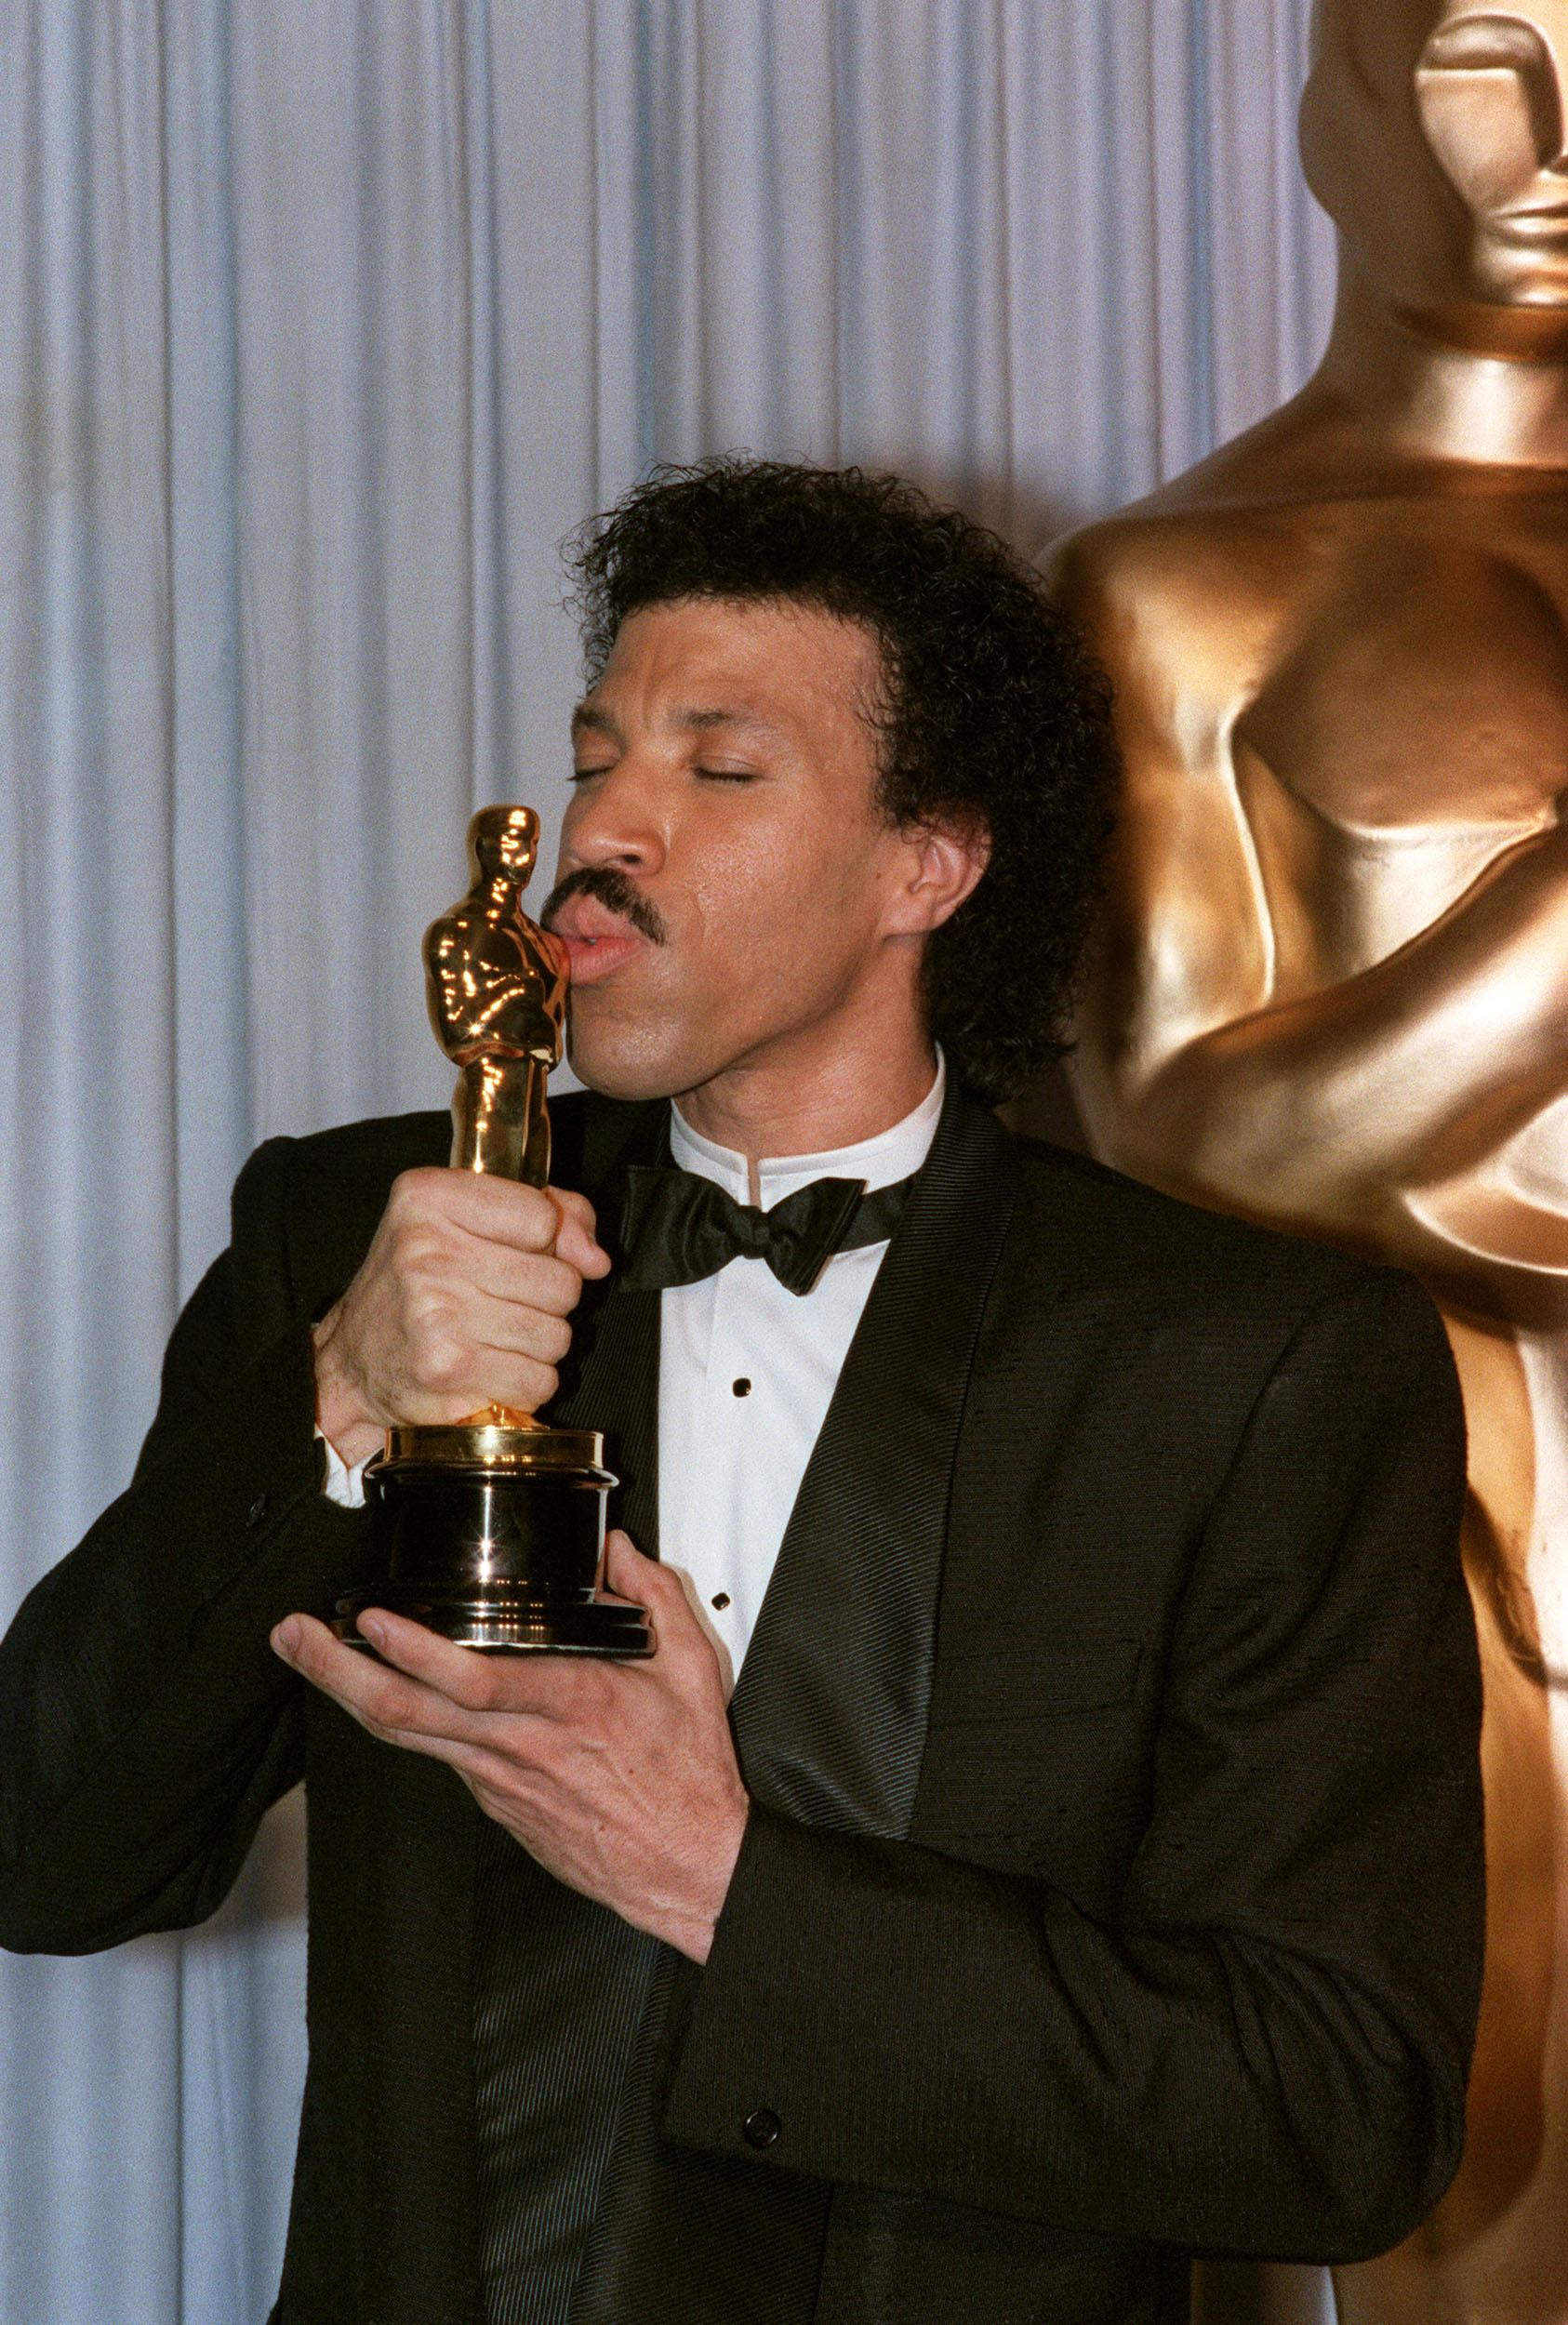 Oscar Photo Gallery A Look Back At Your Favorite